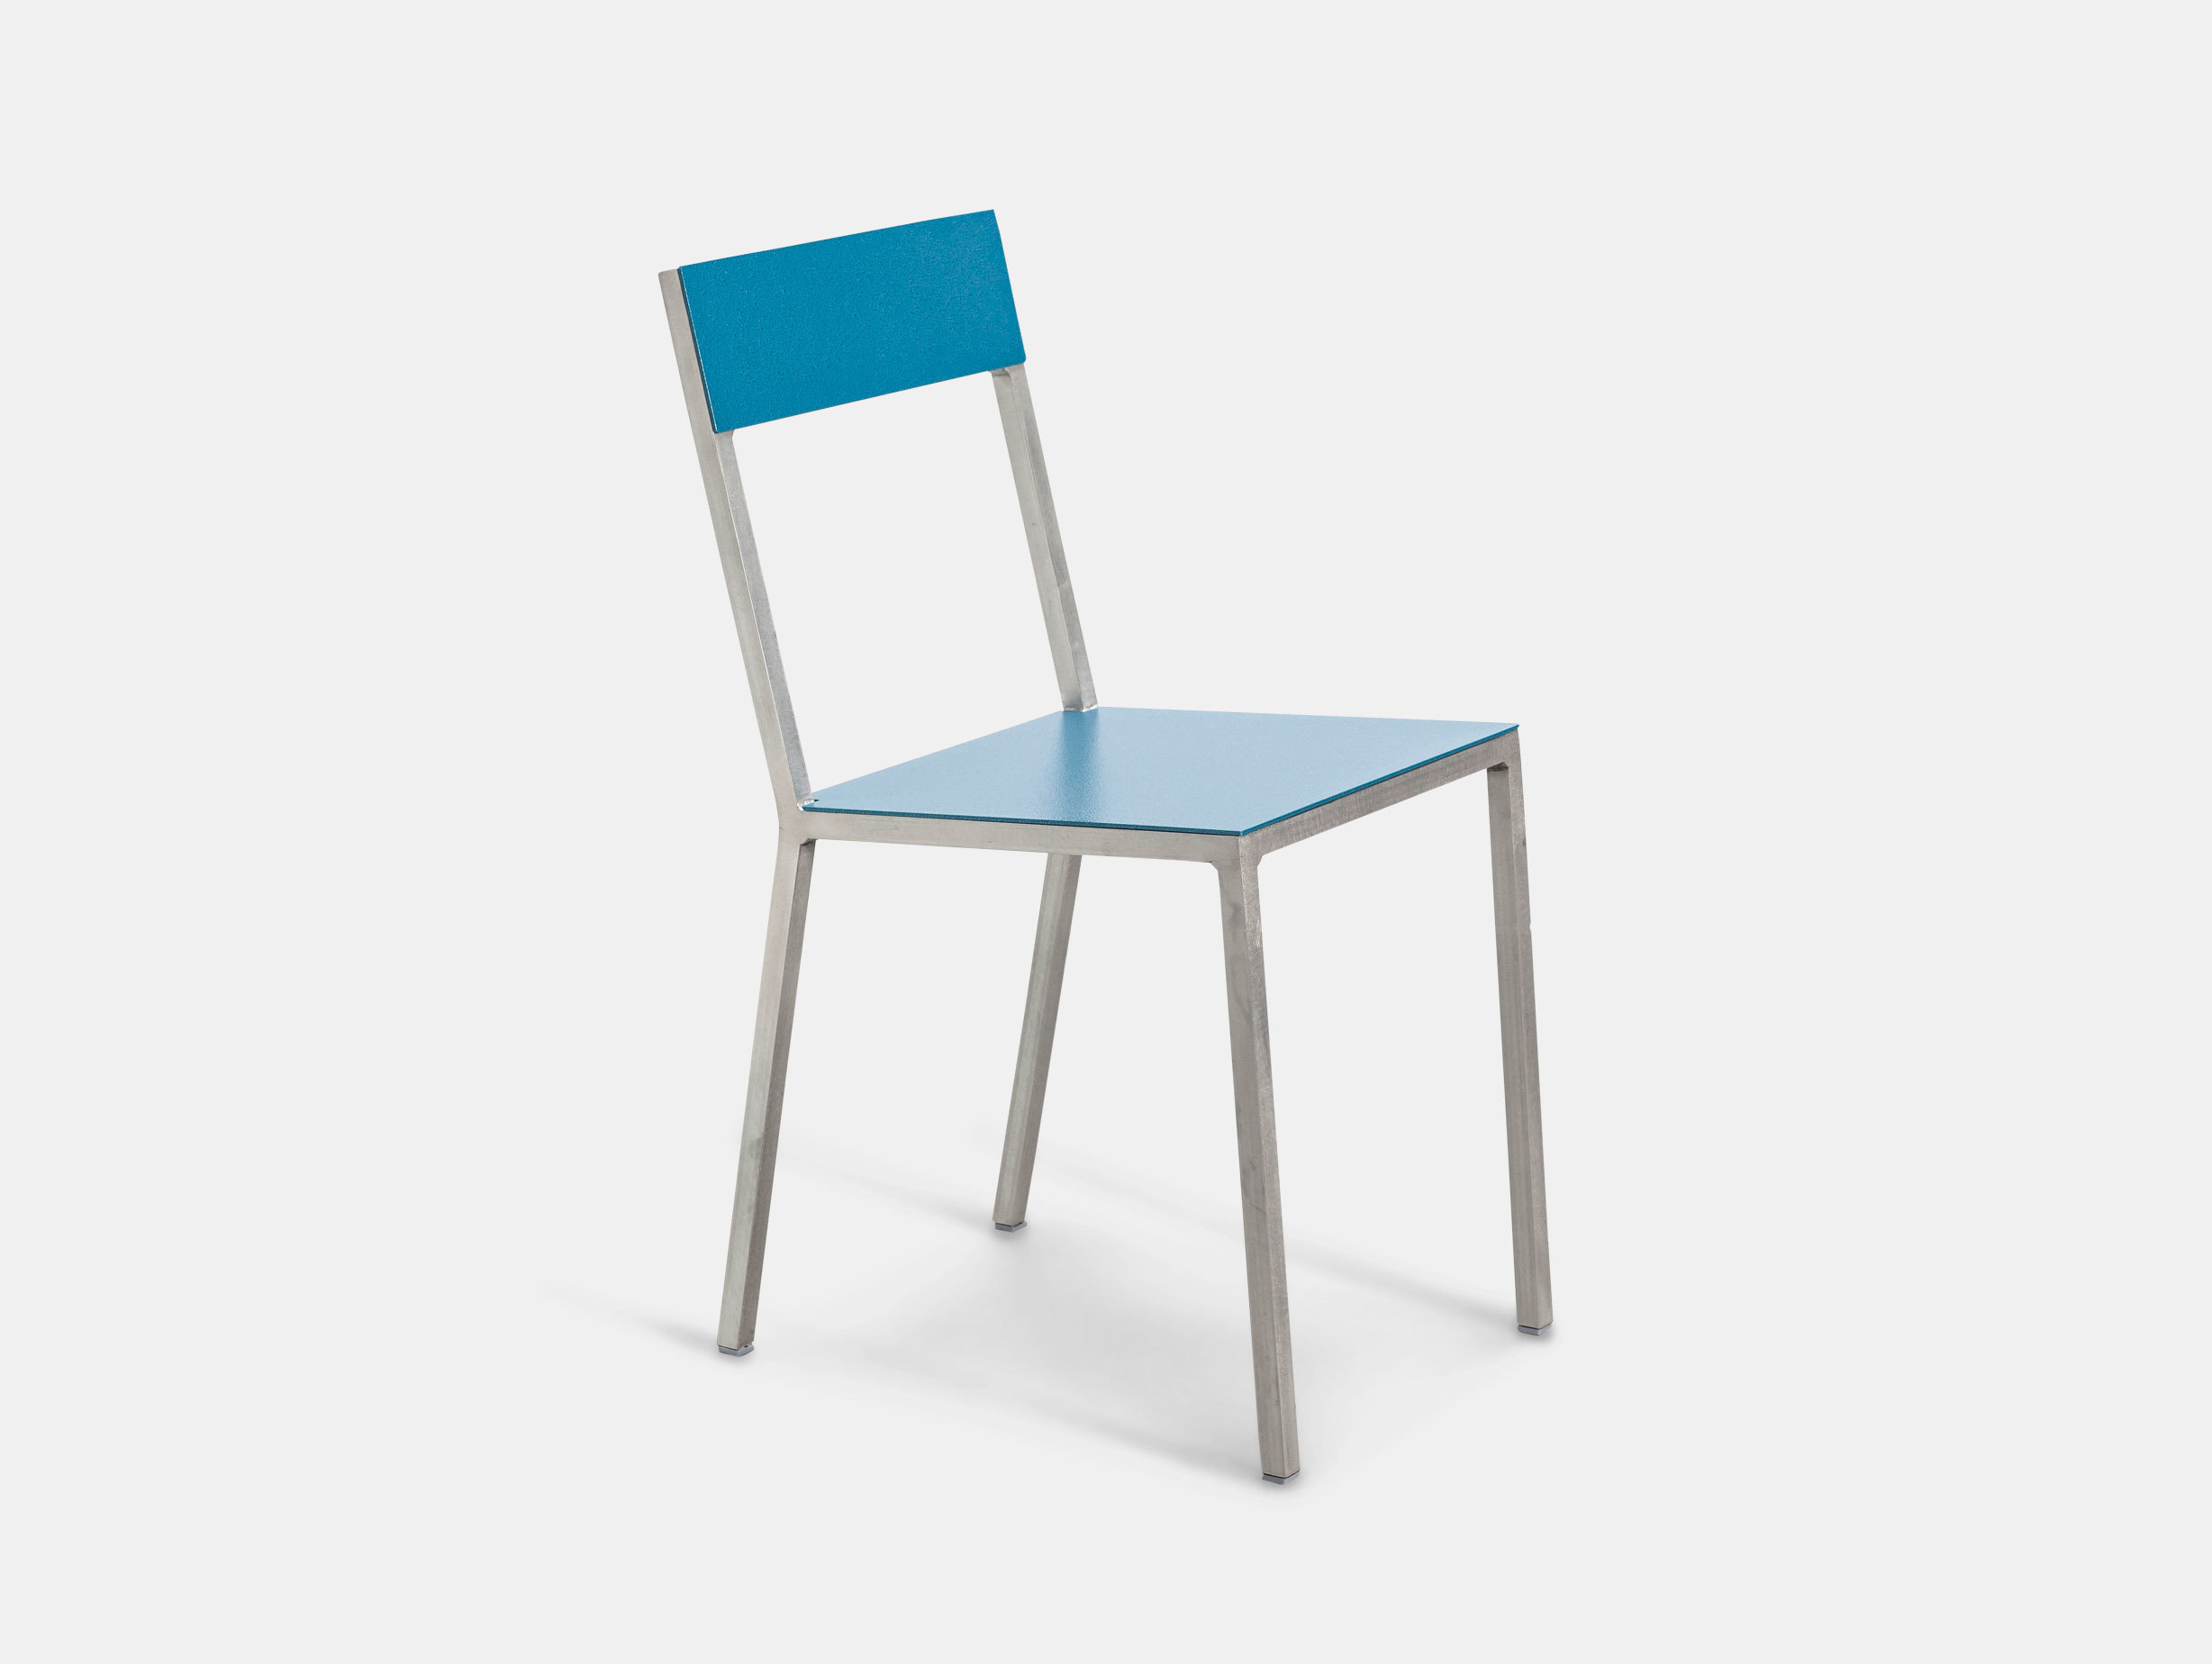 Valerie Objects Alu Chair Seathpblue Backhpblue Muller Van Severen